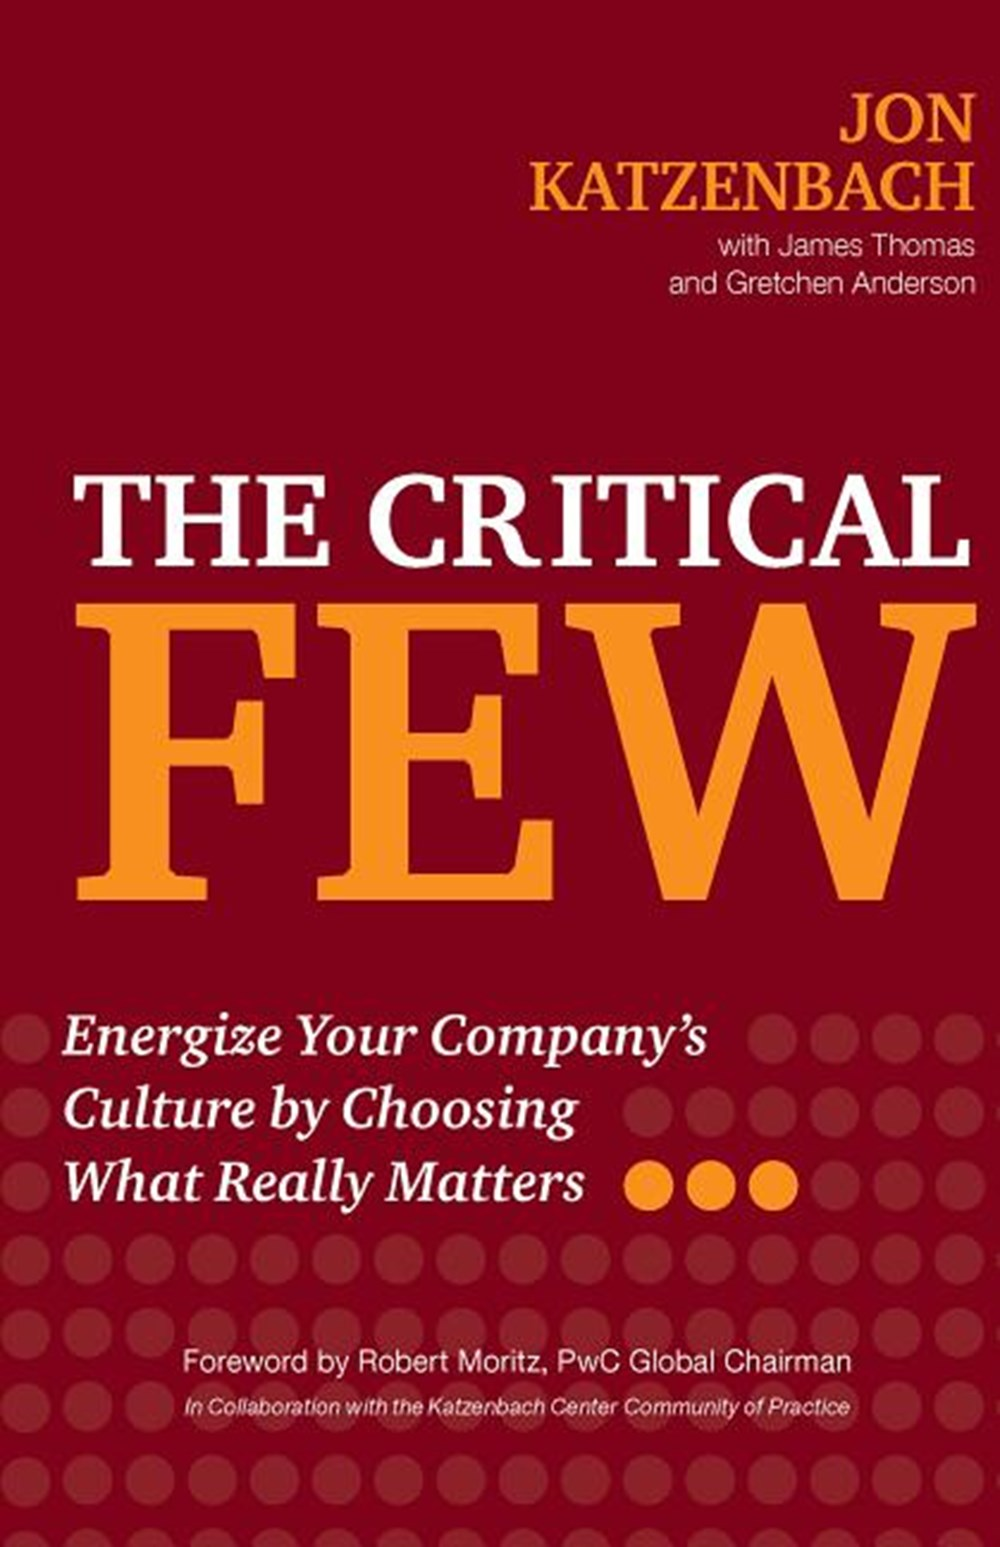 Critical Few Energize Your Company's Culture by Choosing What Really Matters